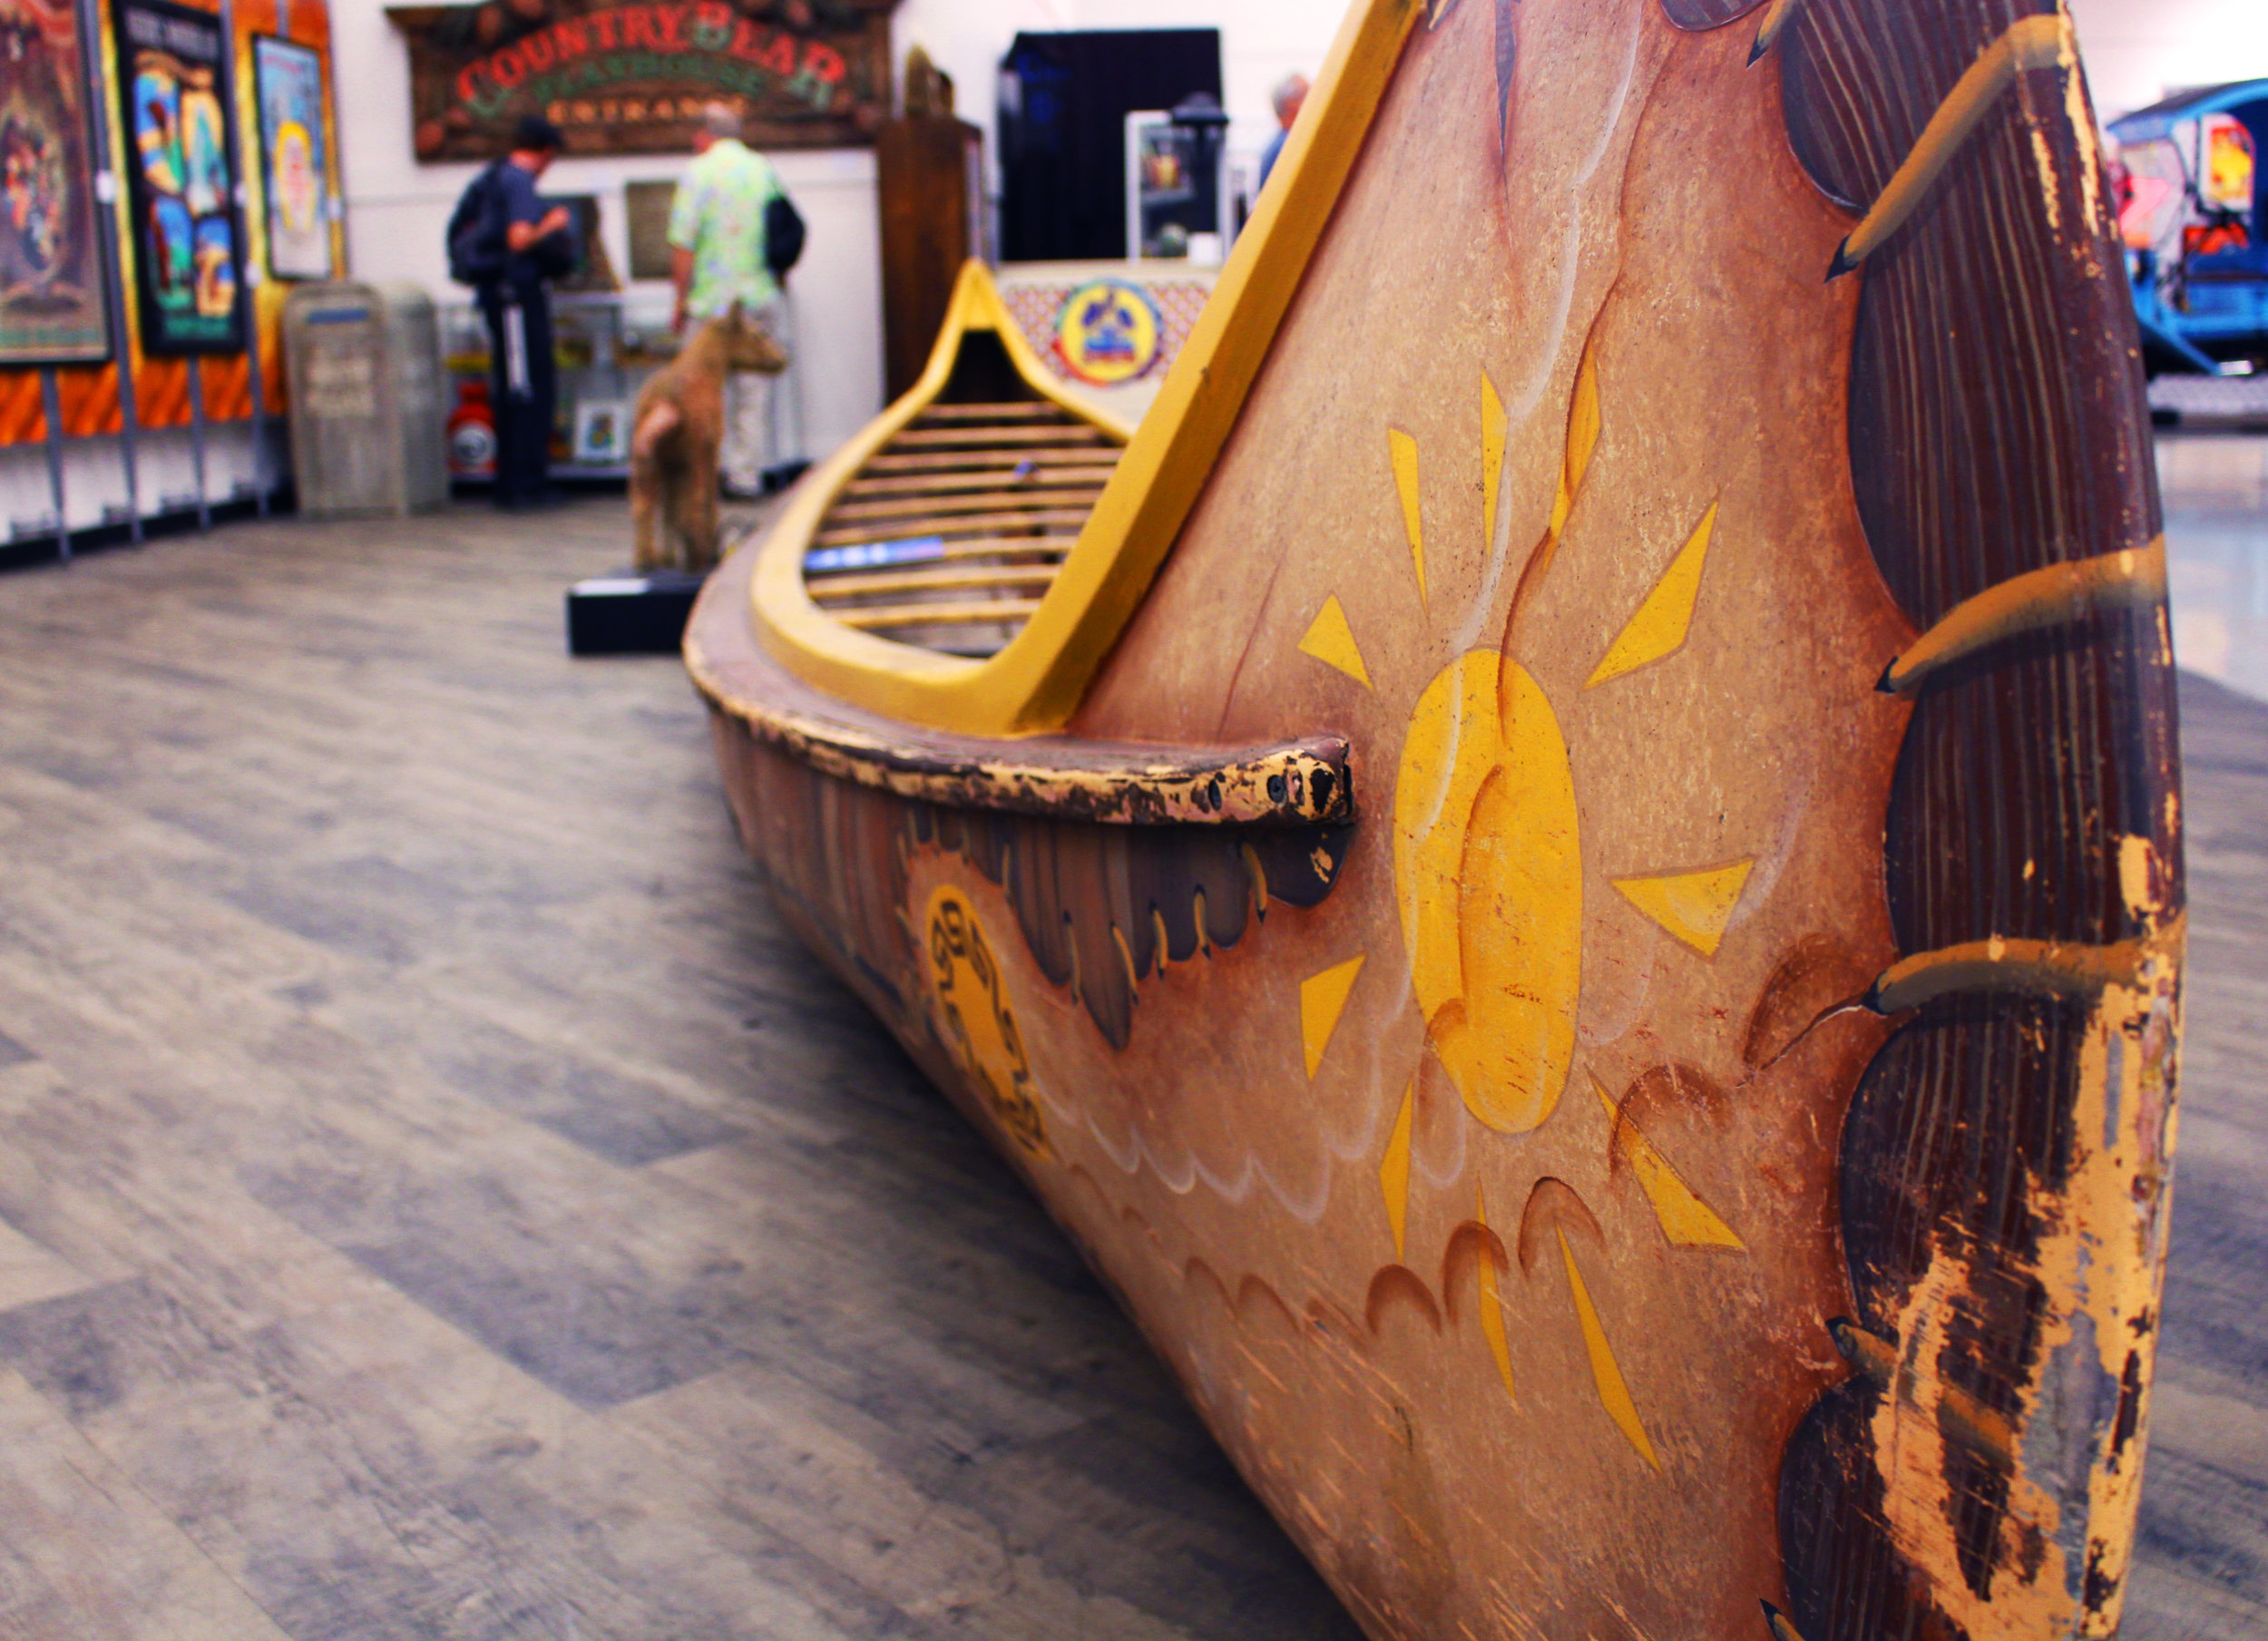 This Davy Crockett Explorer Canoe, in use in the 1990s and early 2000s, went for $6,000.